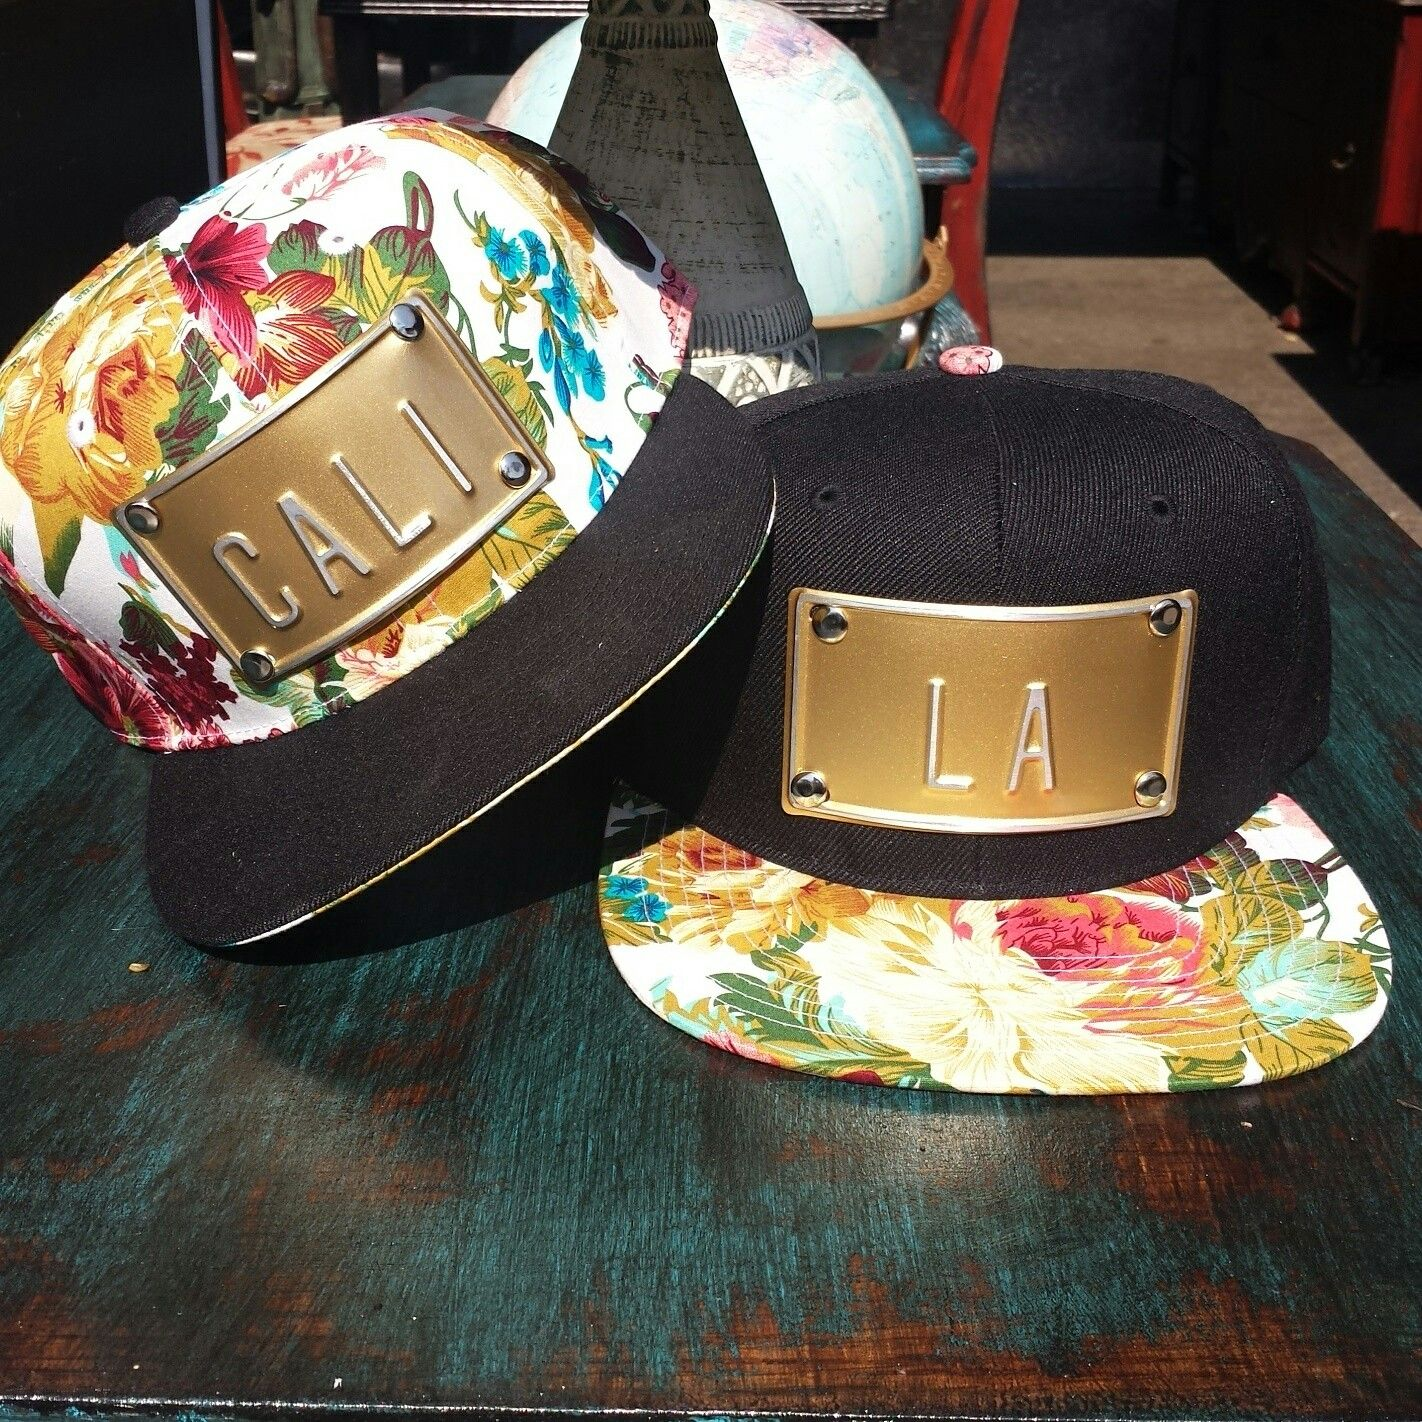 HAWAIIAN METAL HAT floral hawaiian snapback hawaiian hats flower snapbacks  flower hat hawaiian floral hat slay hat la snapback king hat c13fa75680ec